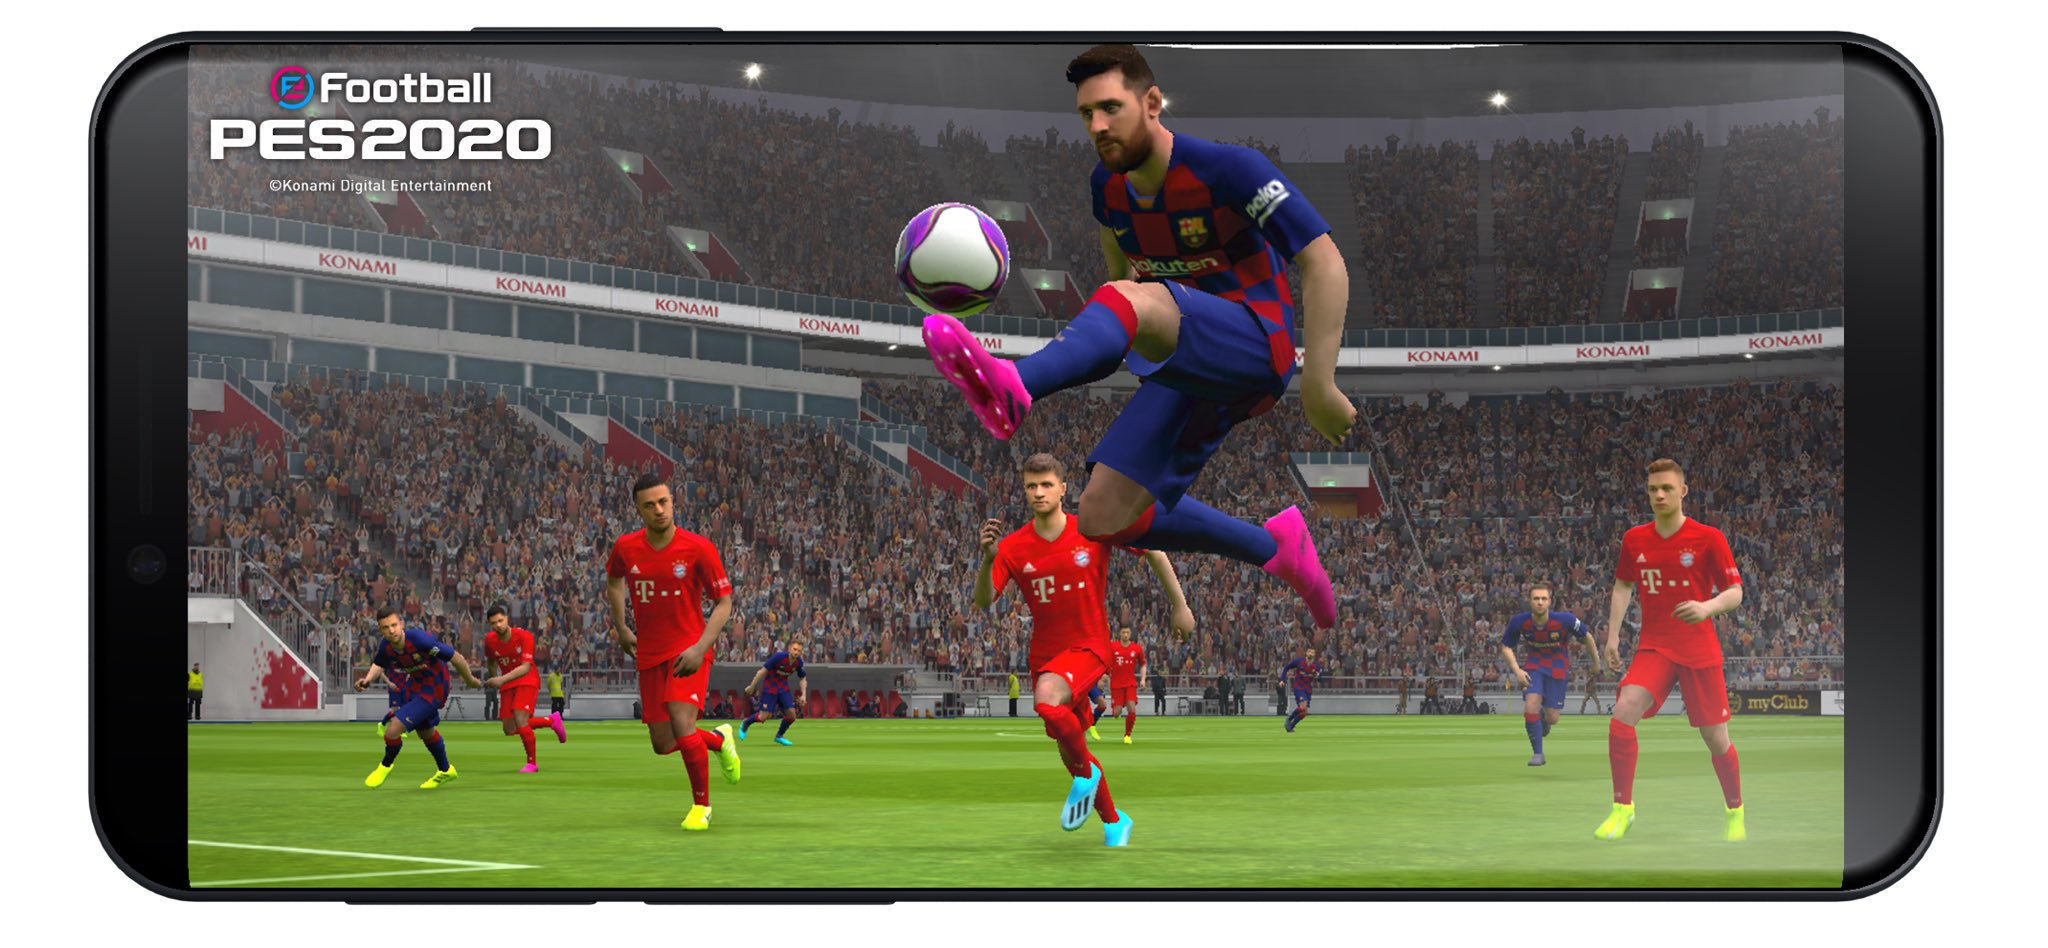 eFootball PES 2020 Mobile - Android Games in Tap   Tap